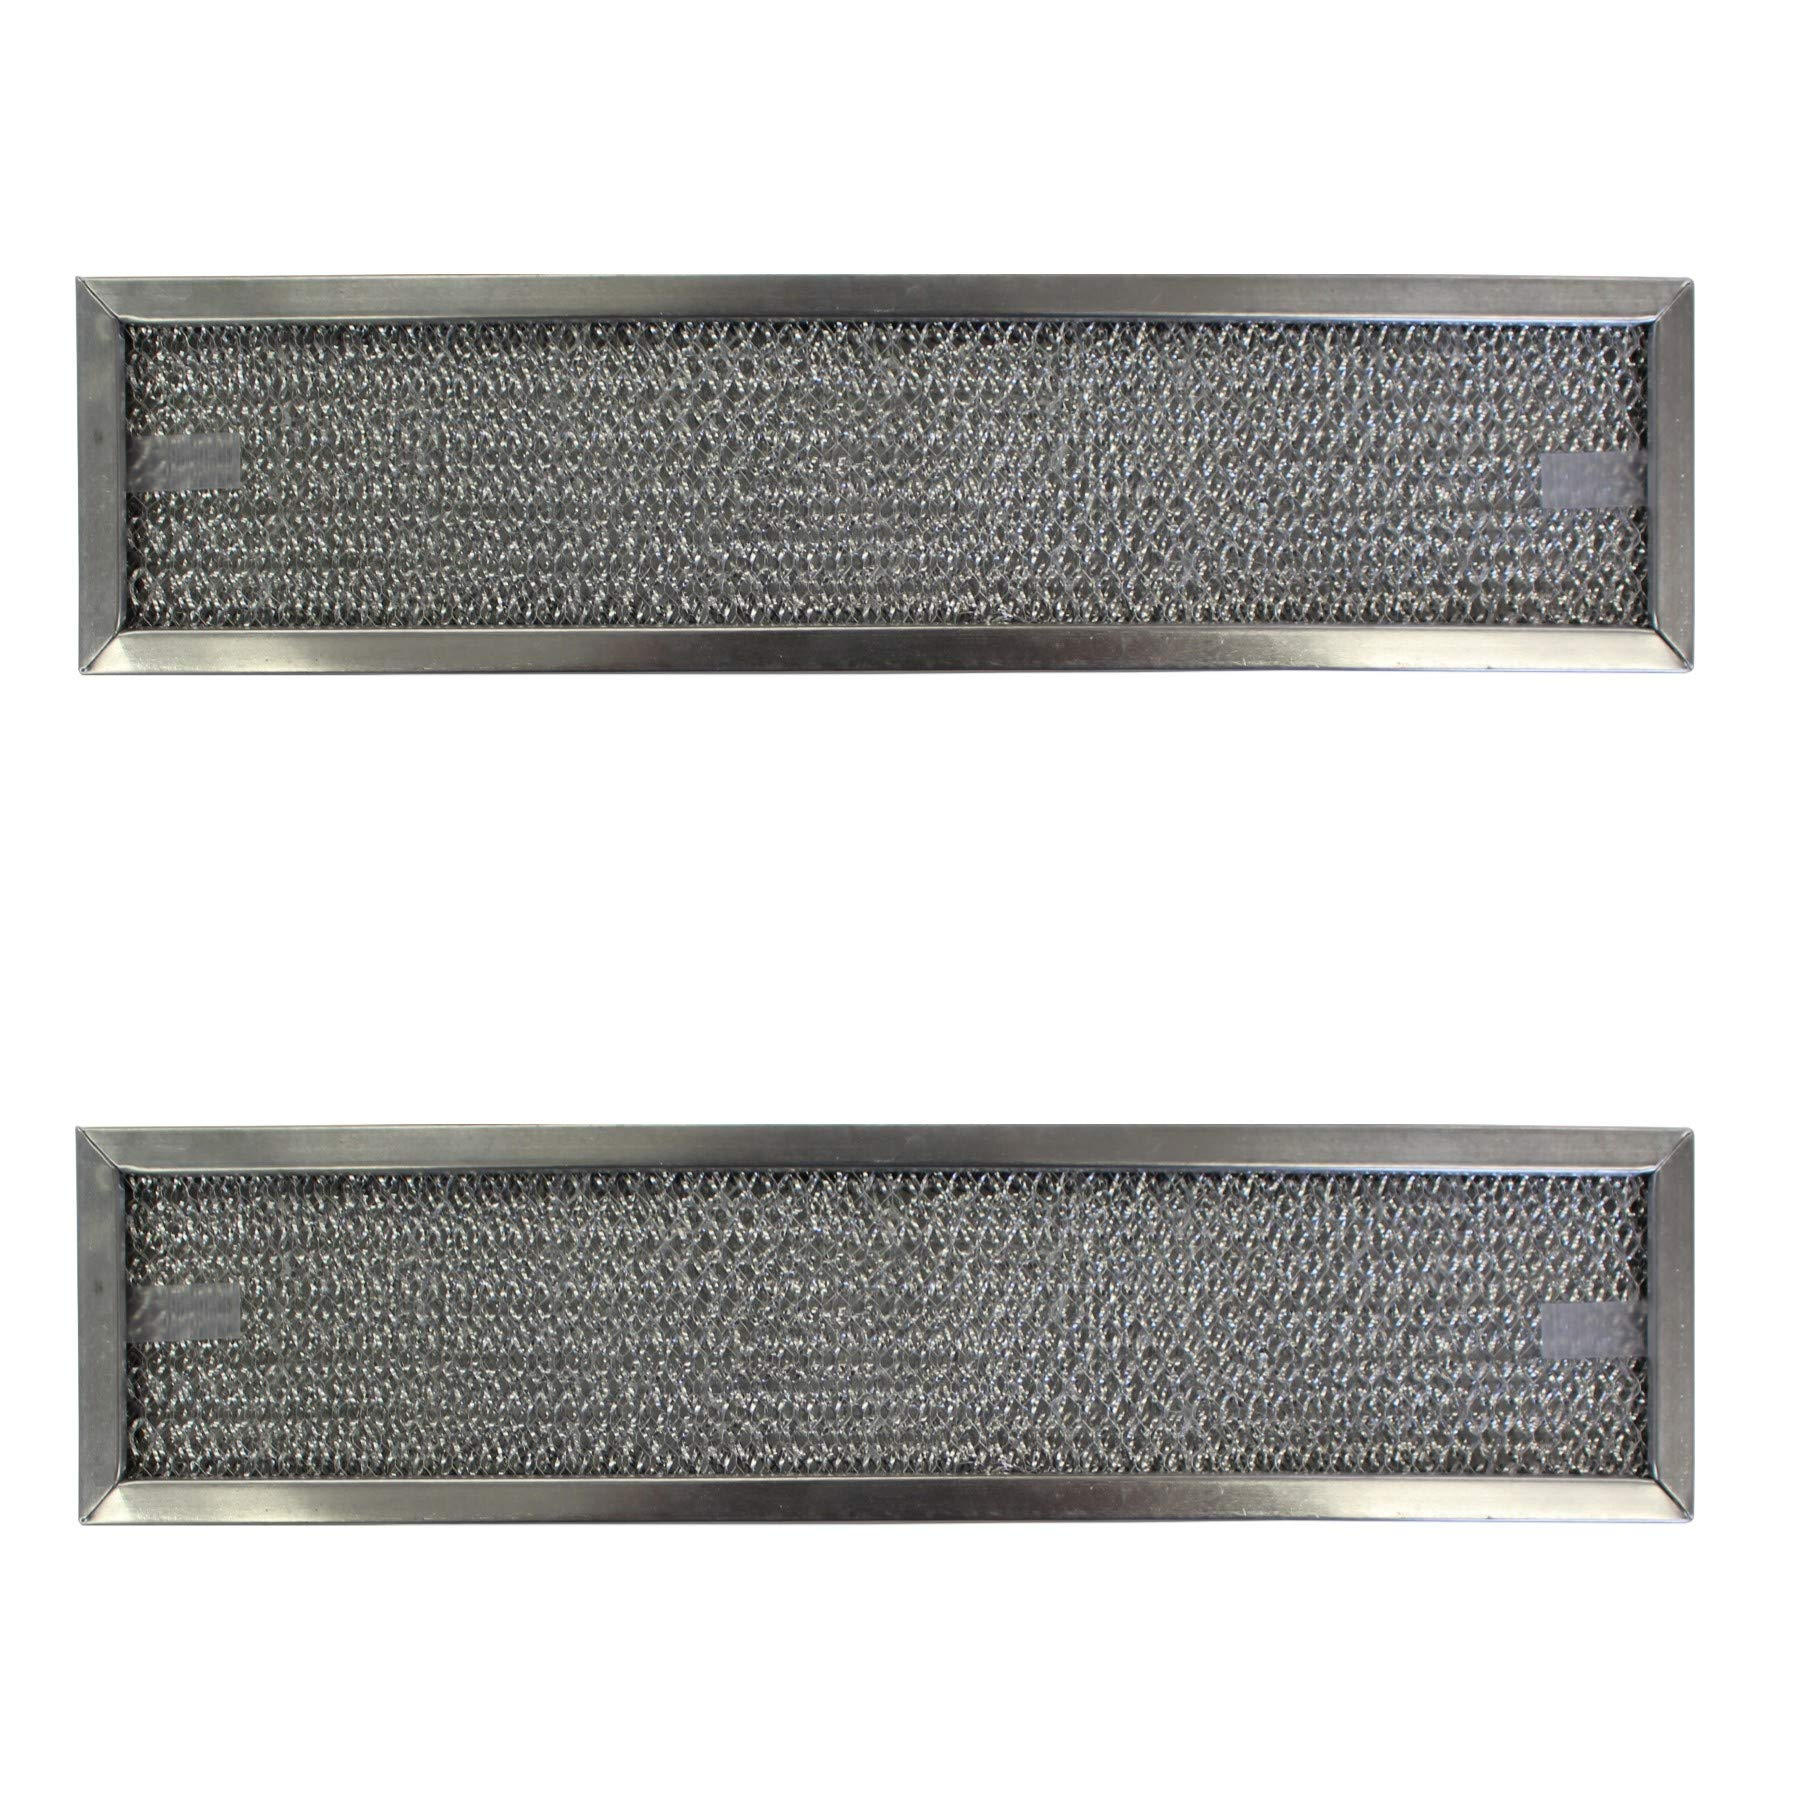 Replacement Aluminum Filters Compatible with Broan 97015841, Broan 97015843,G 8404,  4 1/2 X 12 5/8